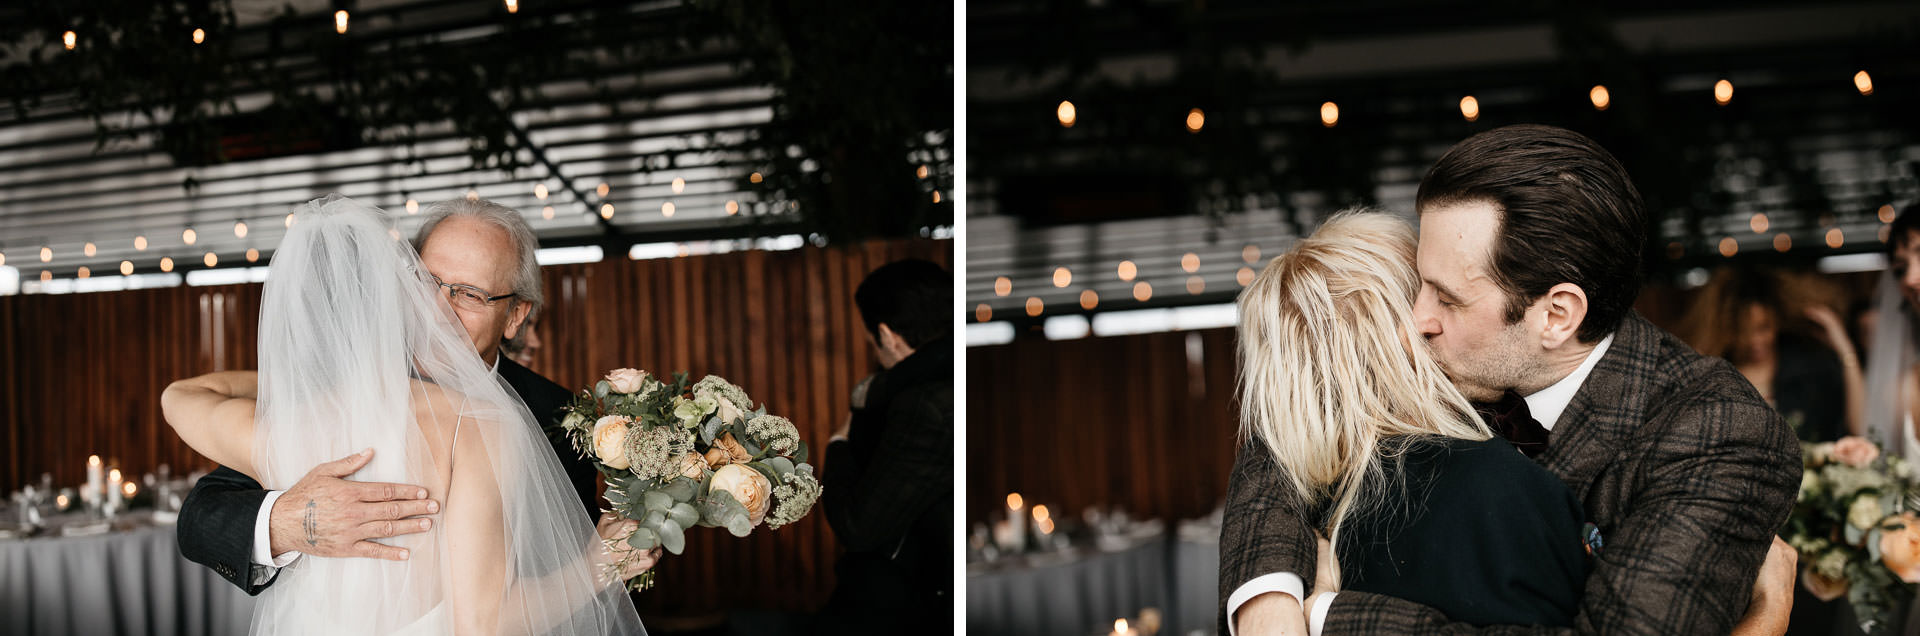 Courtney & Hank Wedding Wedding Brooklyn Box House Hotel, New York, by Jean-Laurent Gaudy